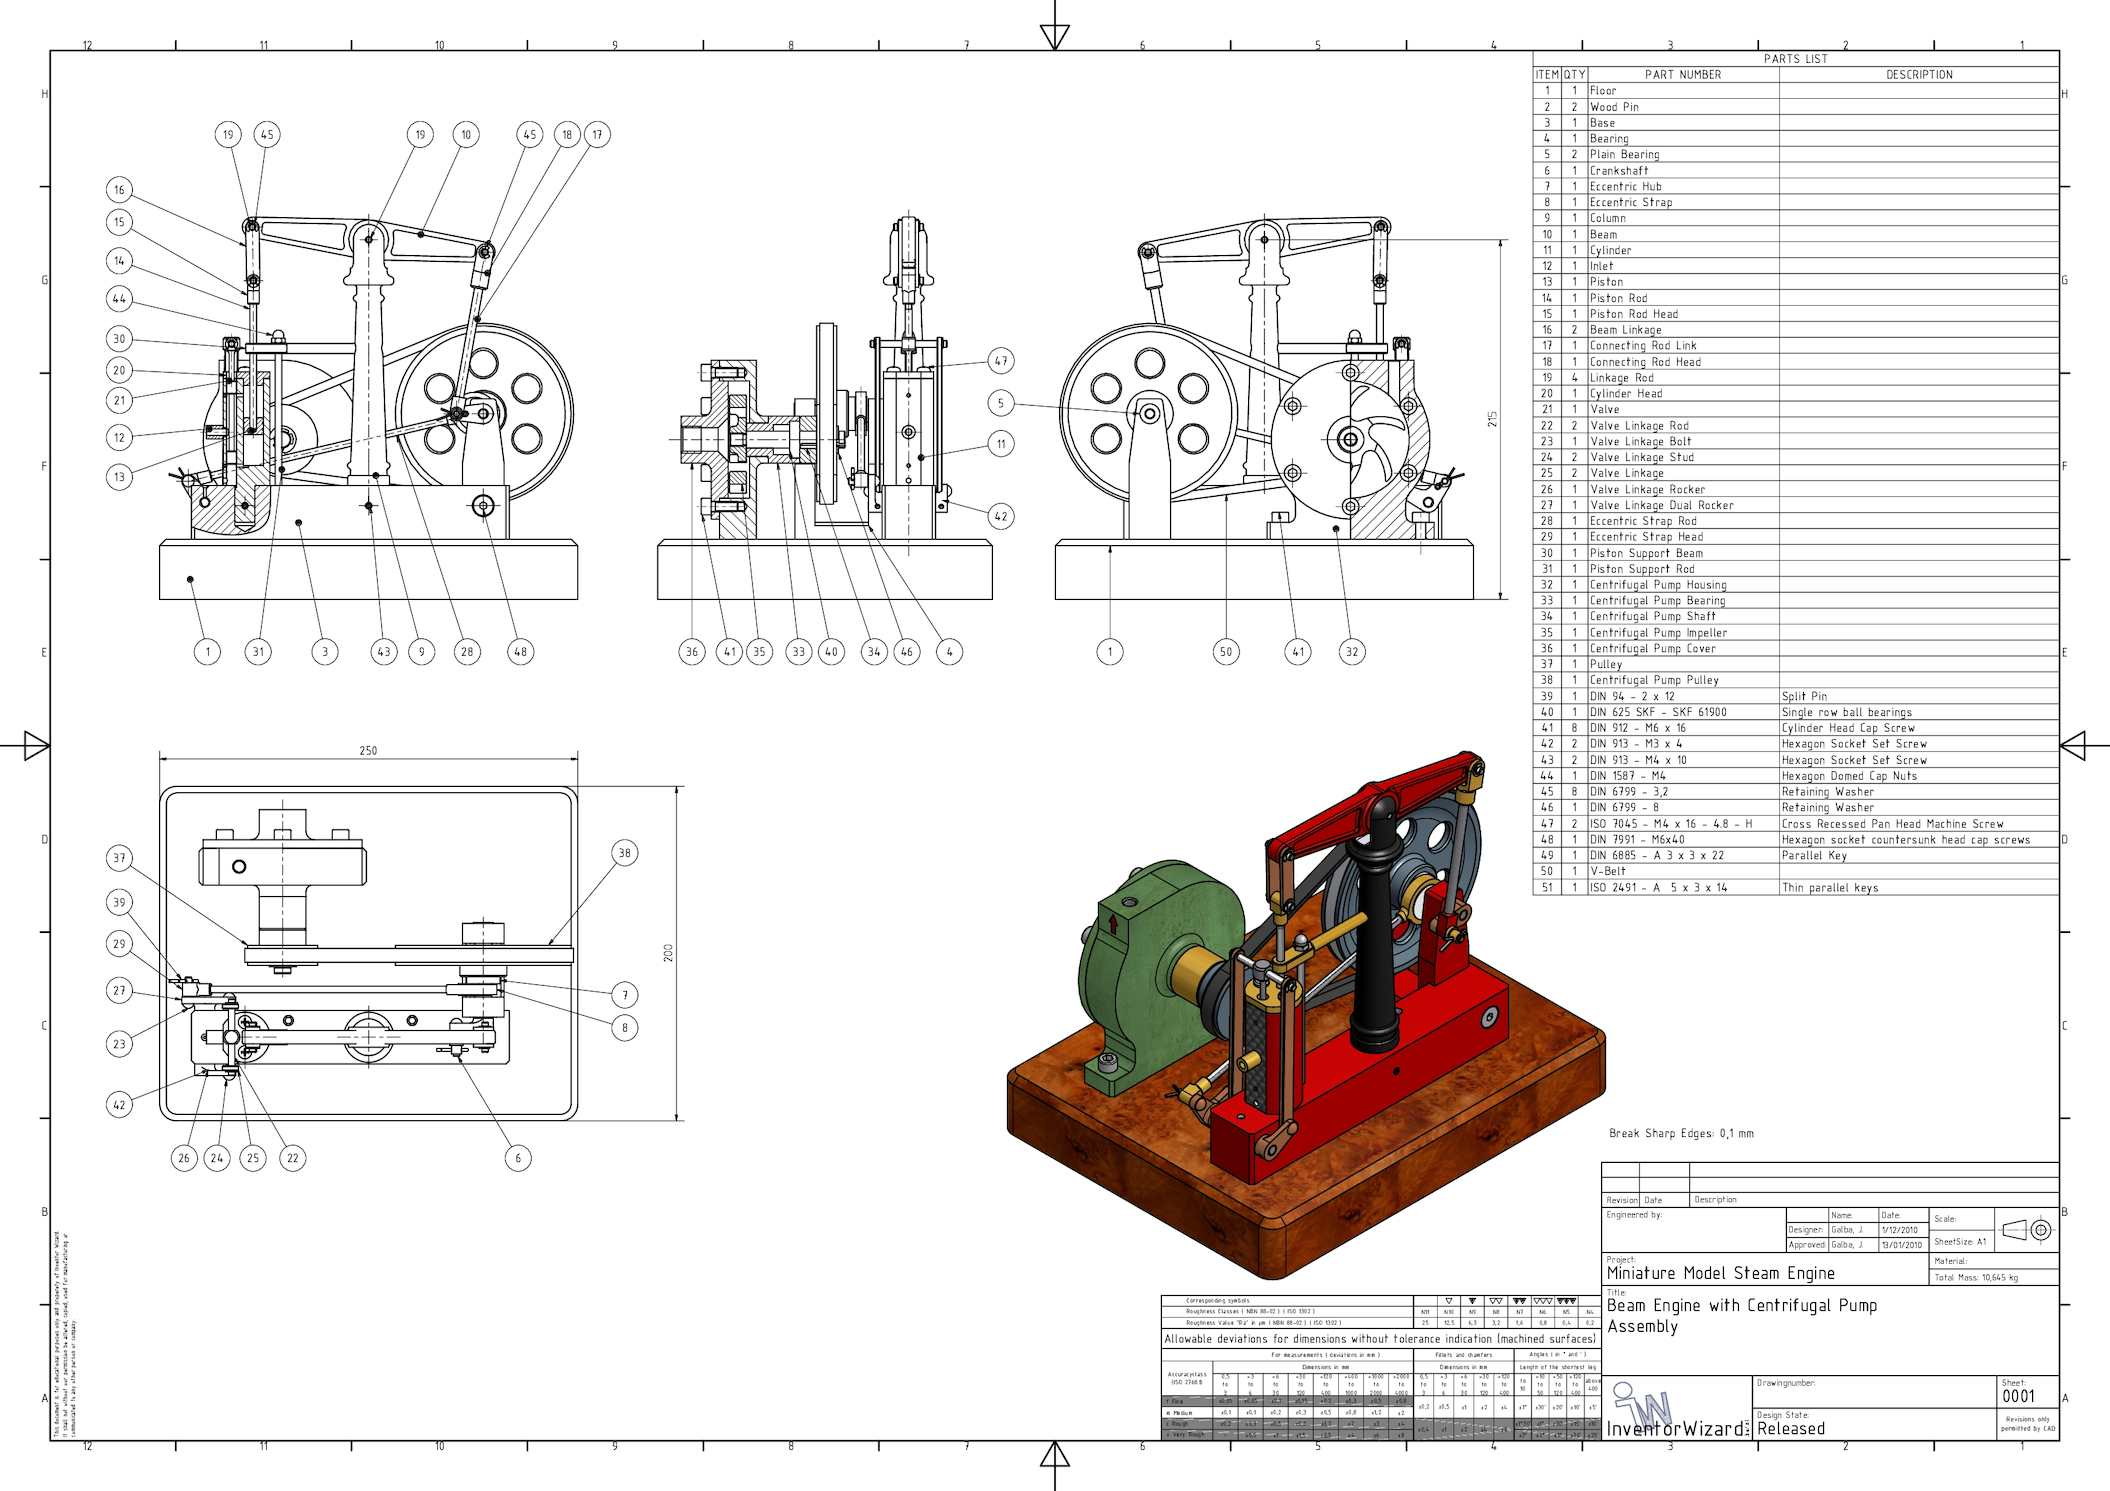 Calameo Beam Engine With Centrifugal Pump Pdf Completo